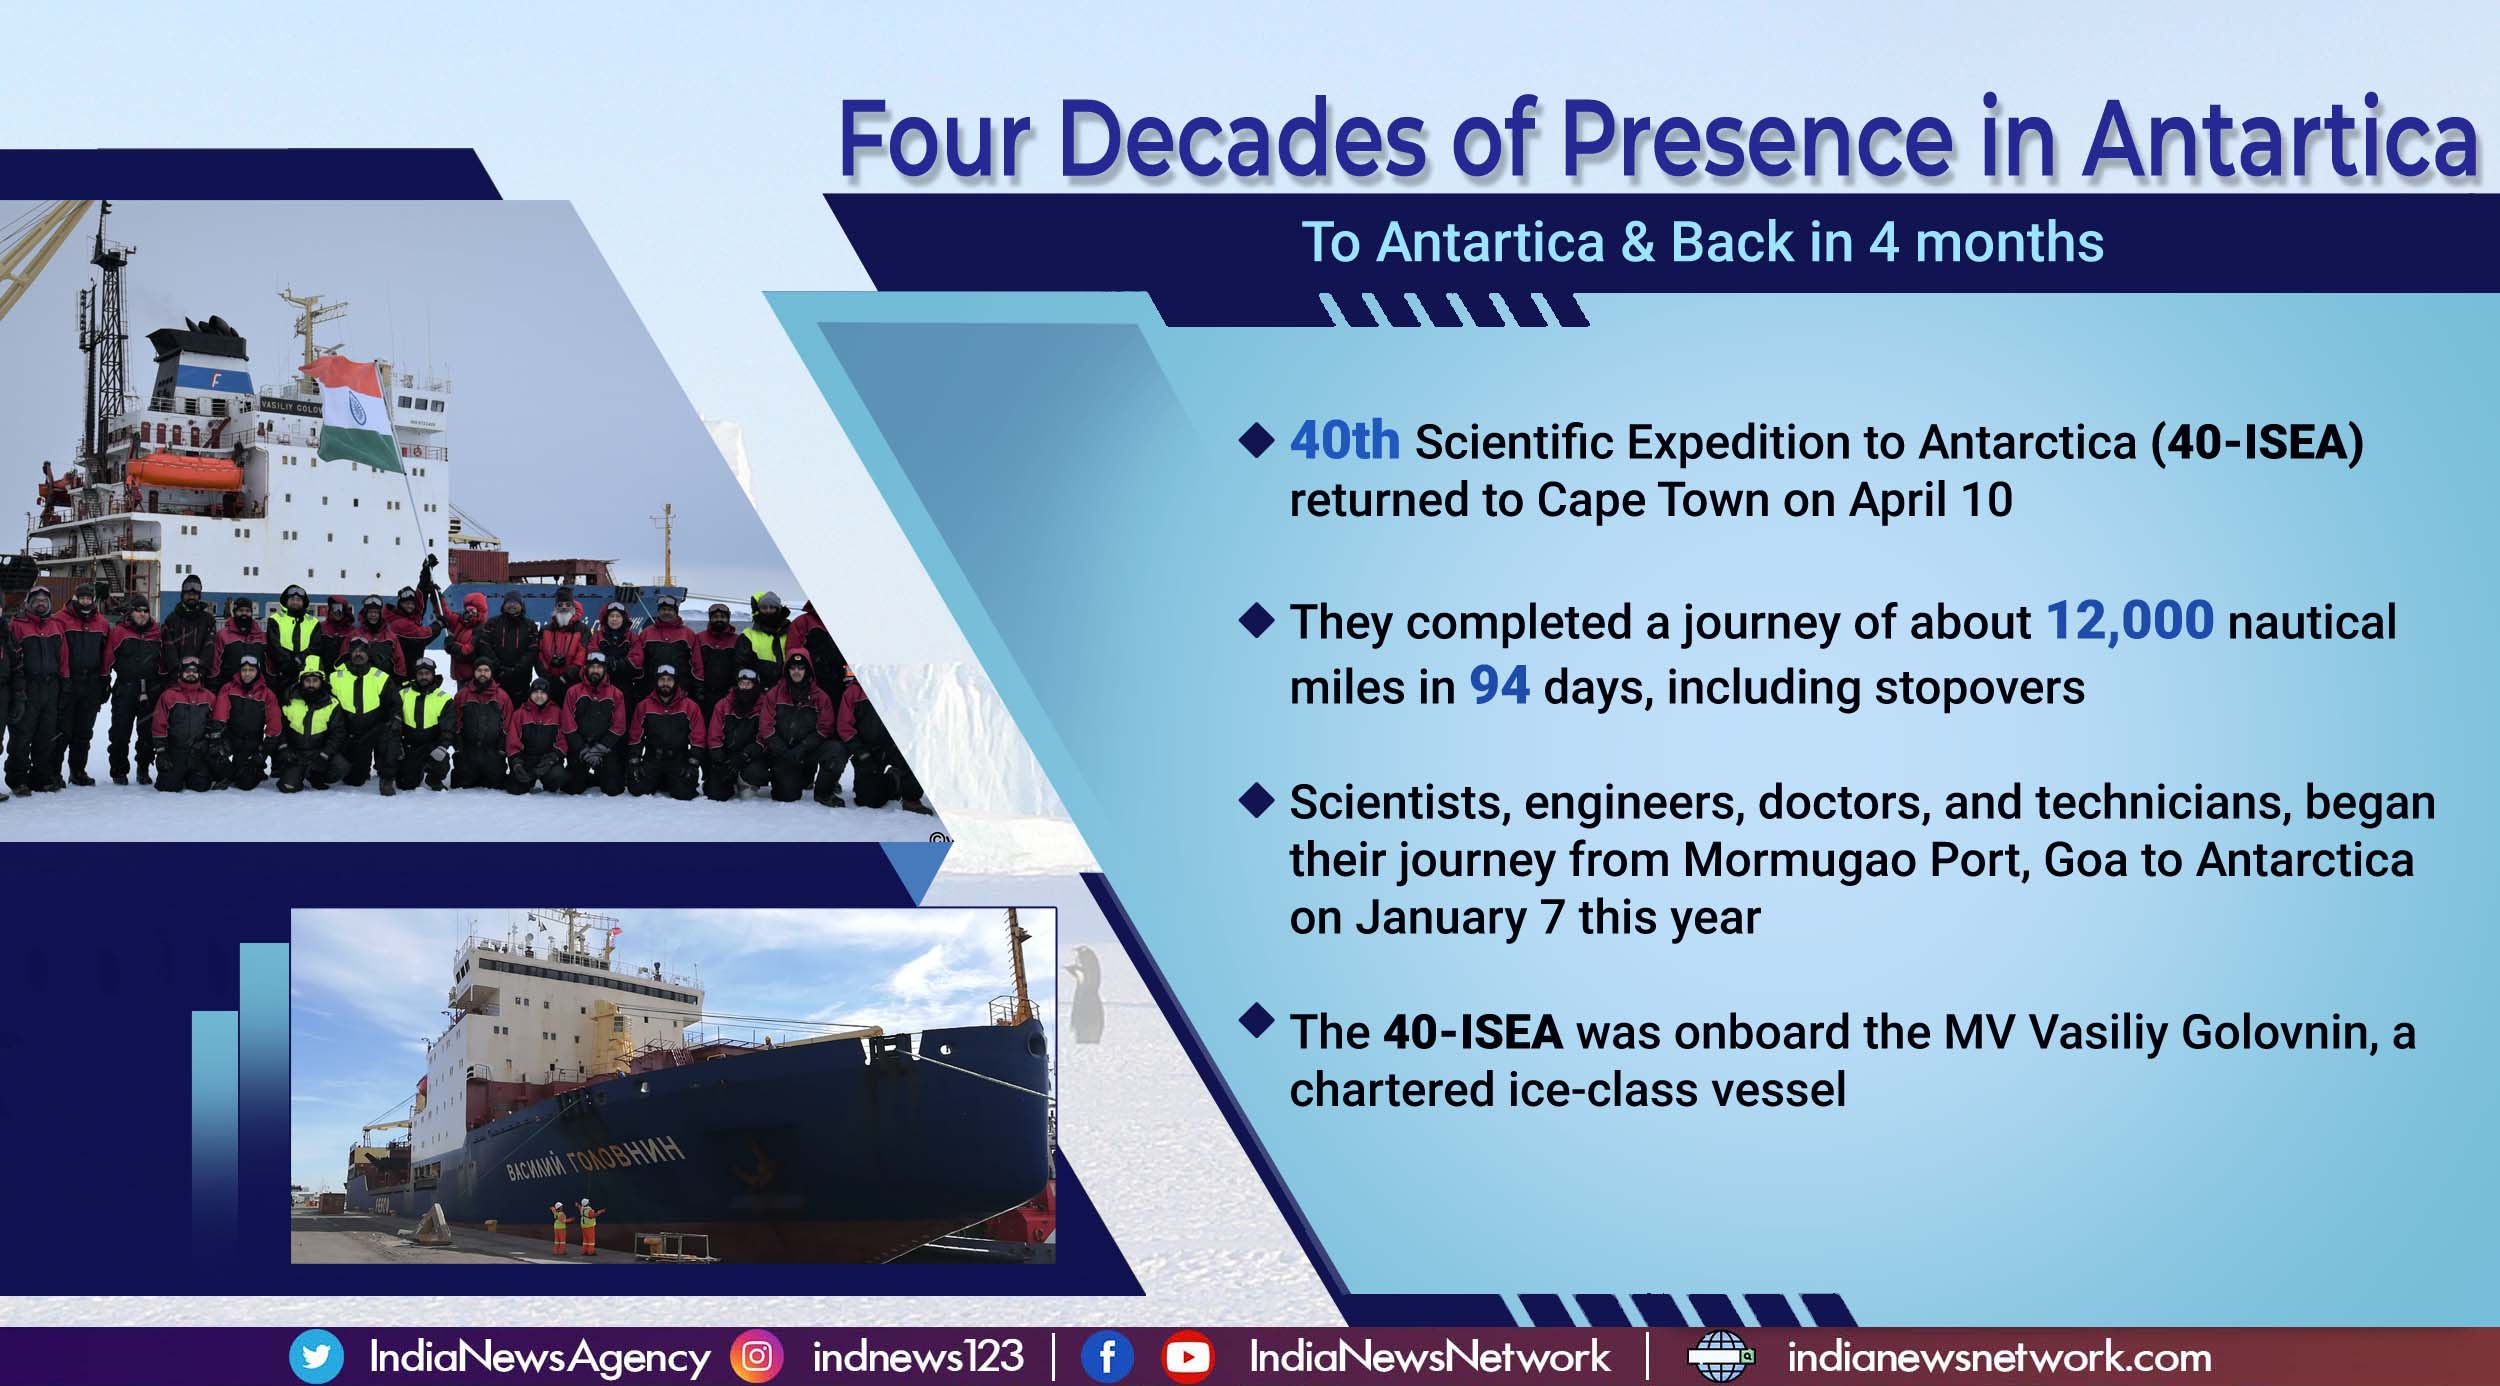 Four successful decades of India's scientific endeavour in Antarctica